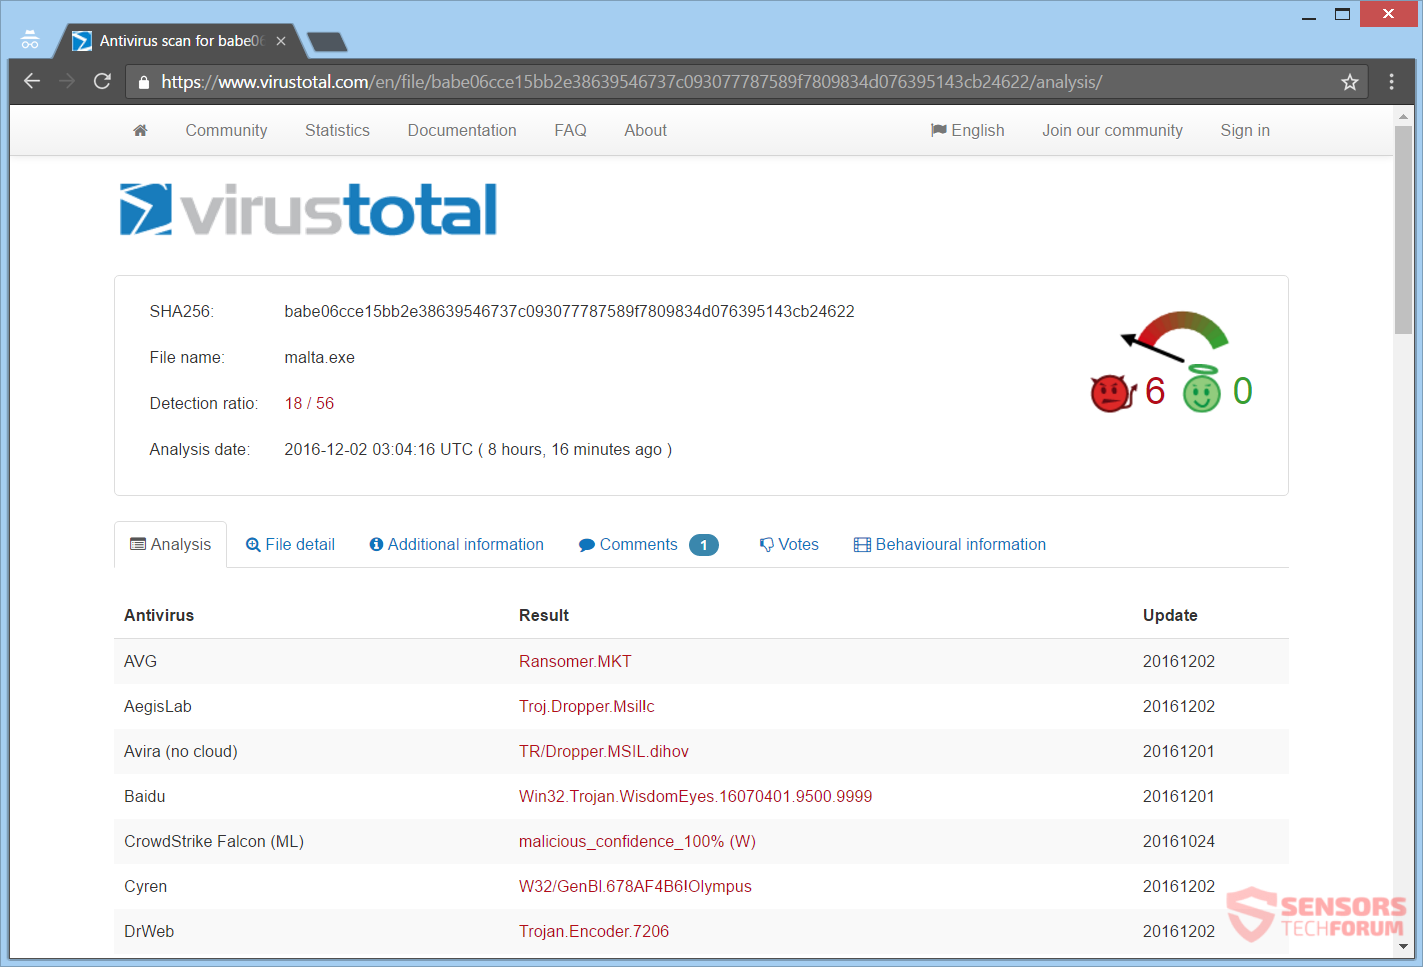 stf-matrix-ransomware-virus-malta-exe-detections-on-virustotal